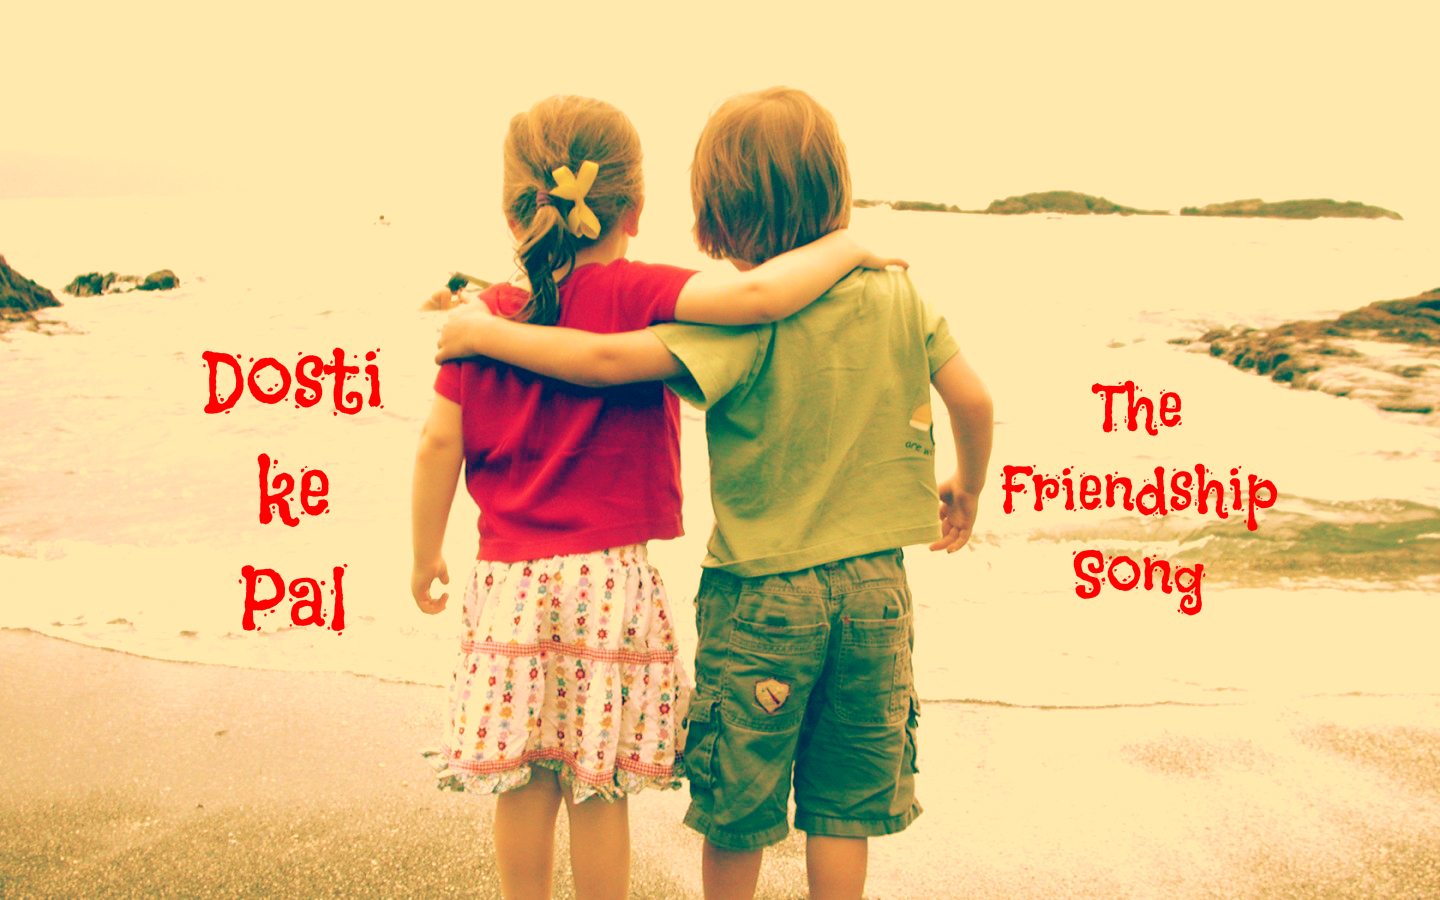 Dosti ke Pal The Friendship Song Vikrmn GJ GWG Chartered Accountant CA Vikram Verma